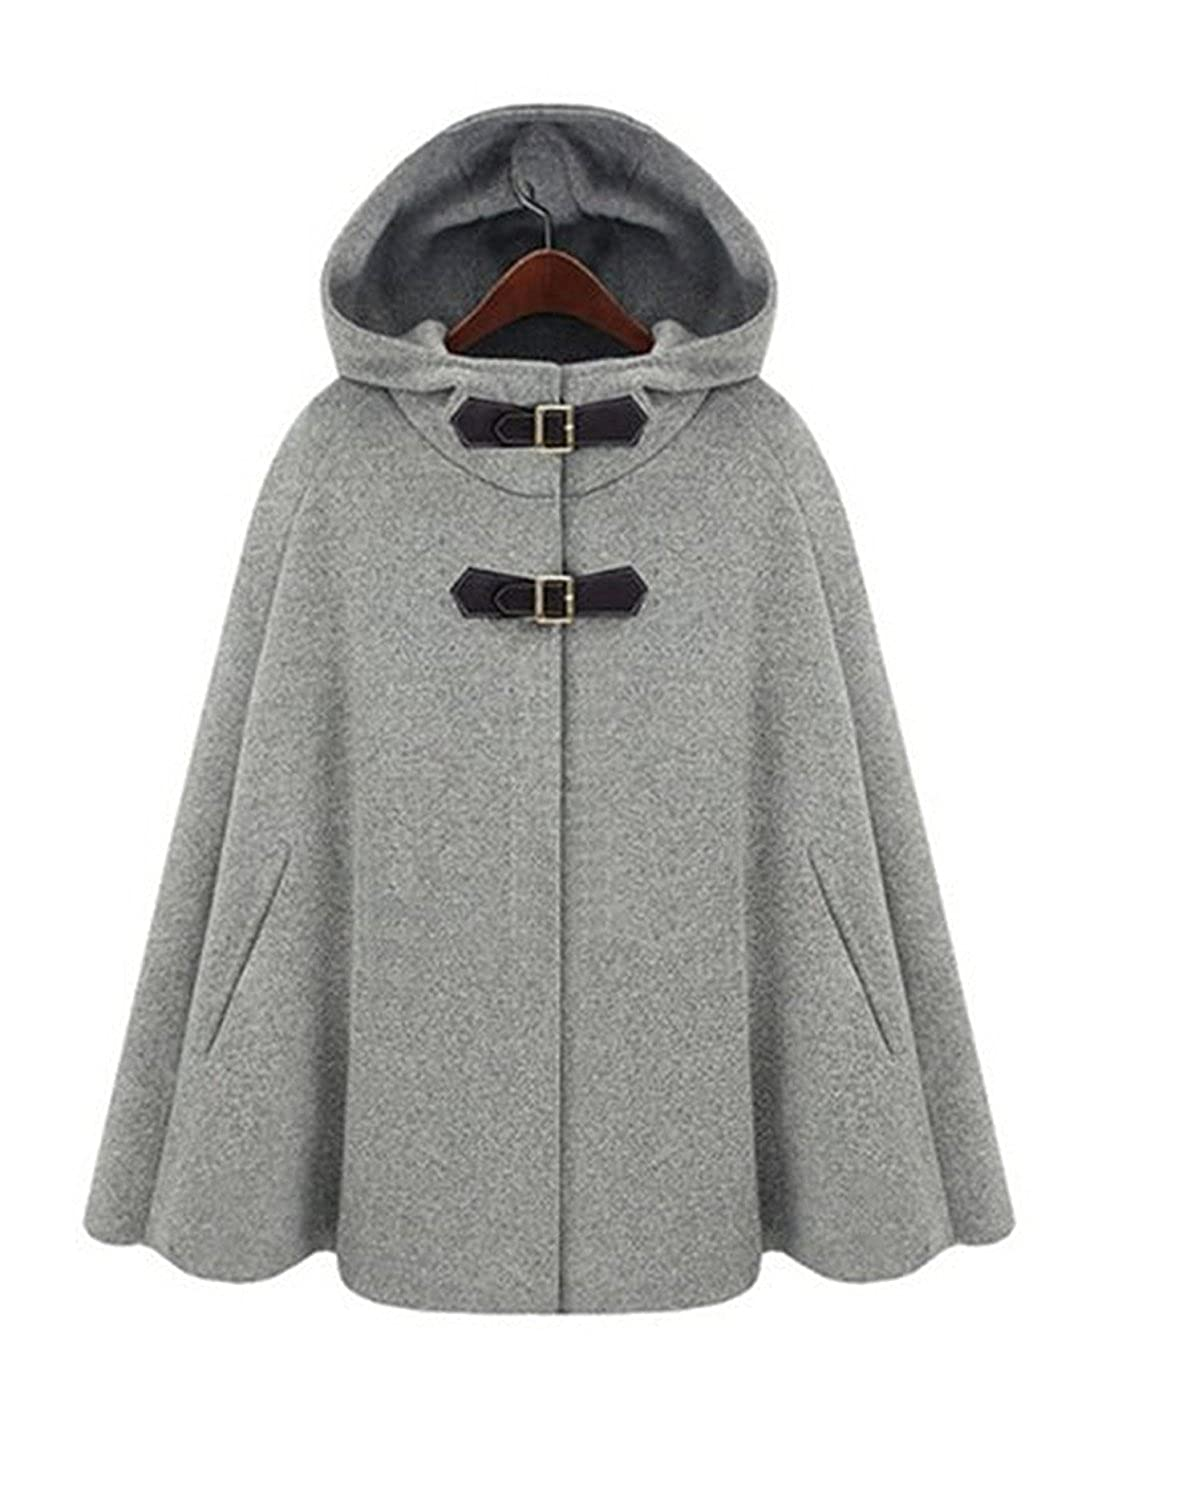 In-fashion style Women's Trendy Batwing Cape Wool Poncho Jacket Warm Cloak Coat